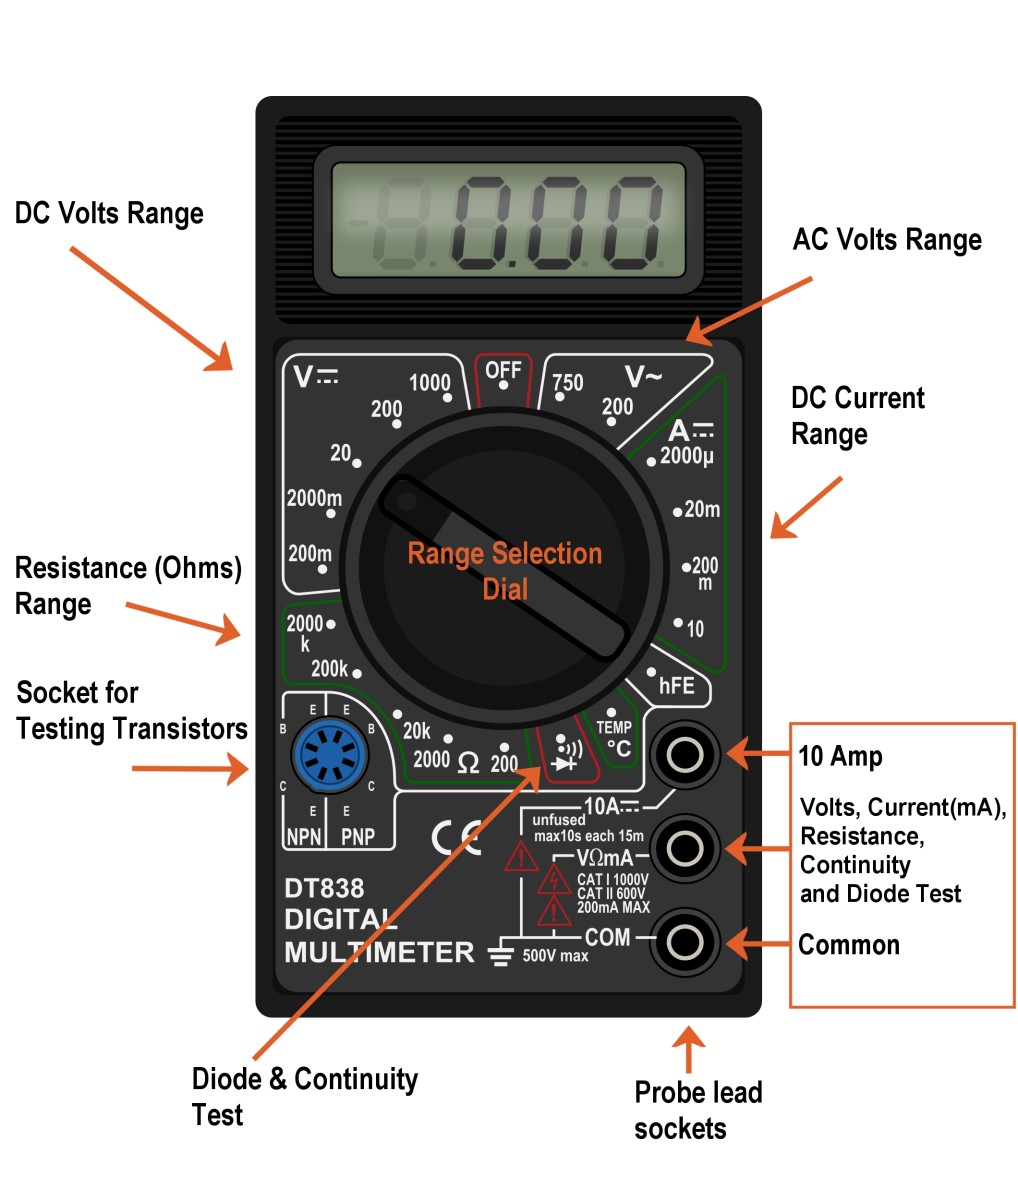 How to Use a Multimeter to Measure Voltage, Current and Resistance